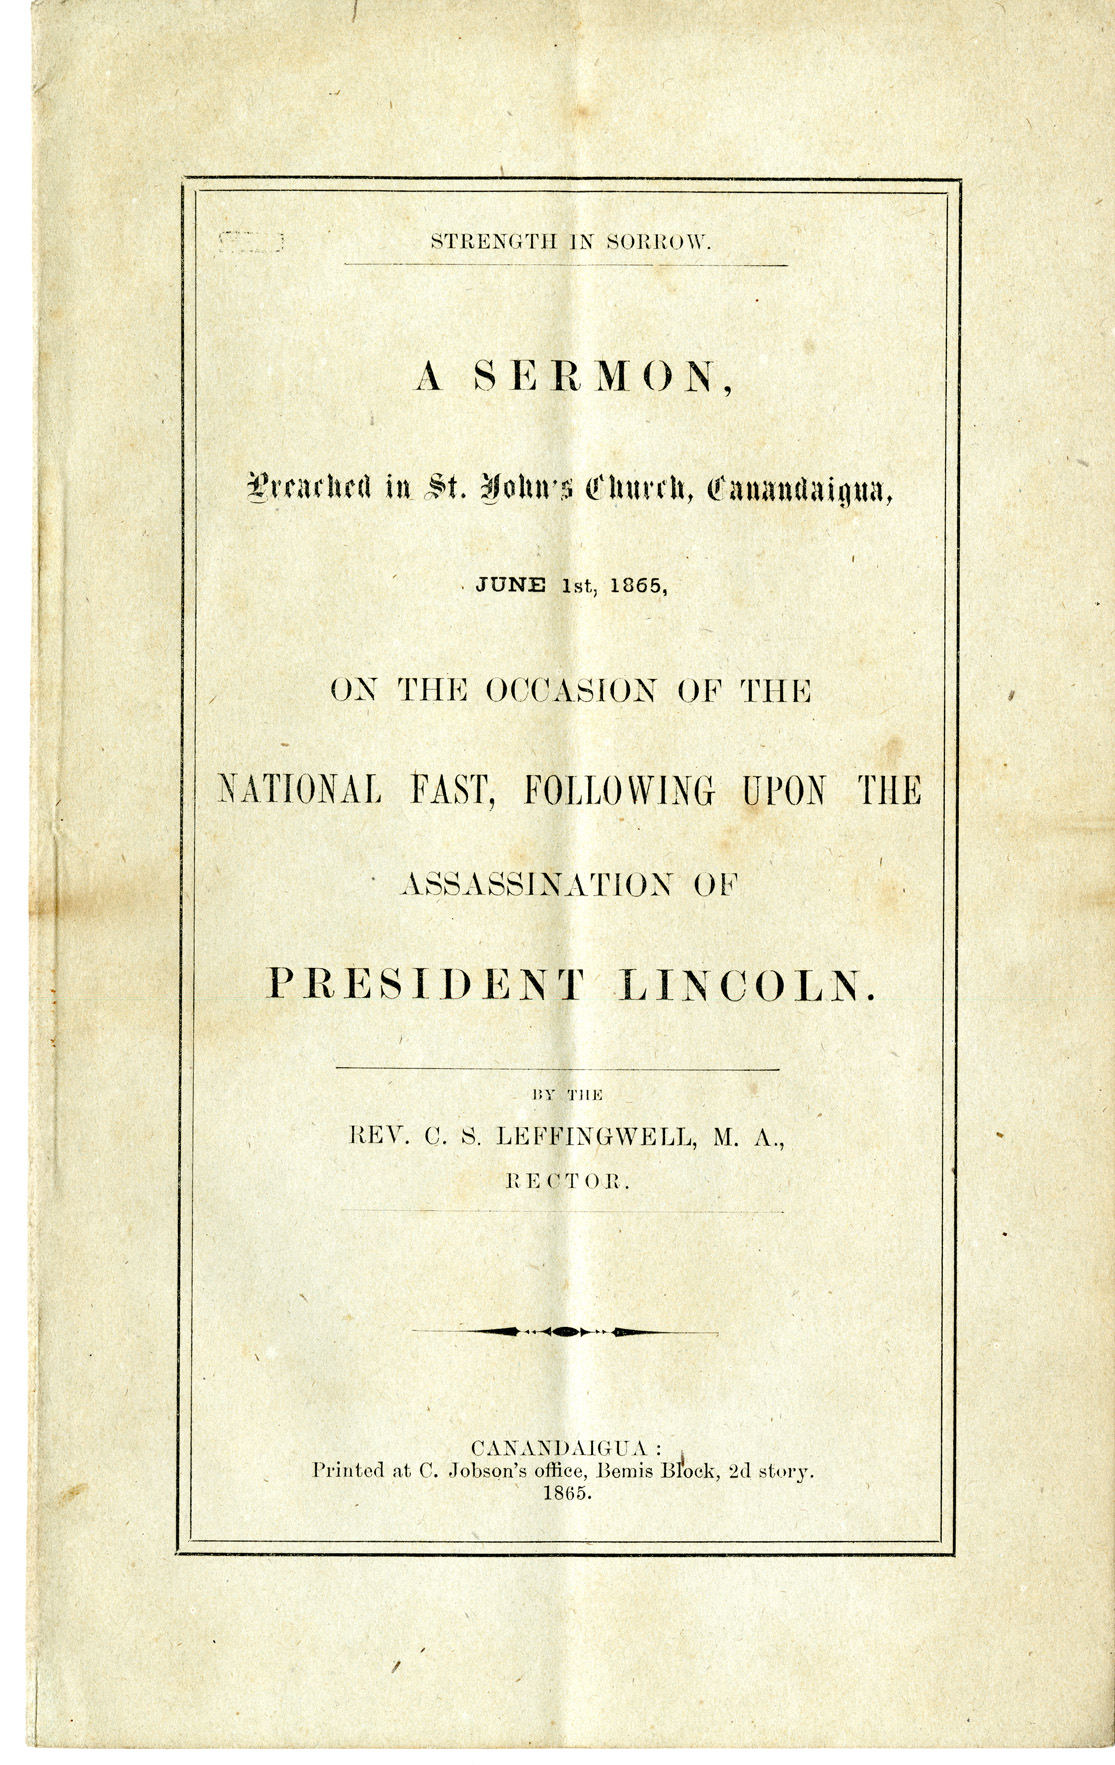 A Sermon Preached in St. John's Church on the Occasion of the National Fast, following upon the Assasination of President Lincoln